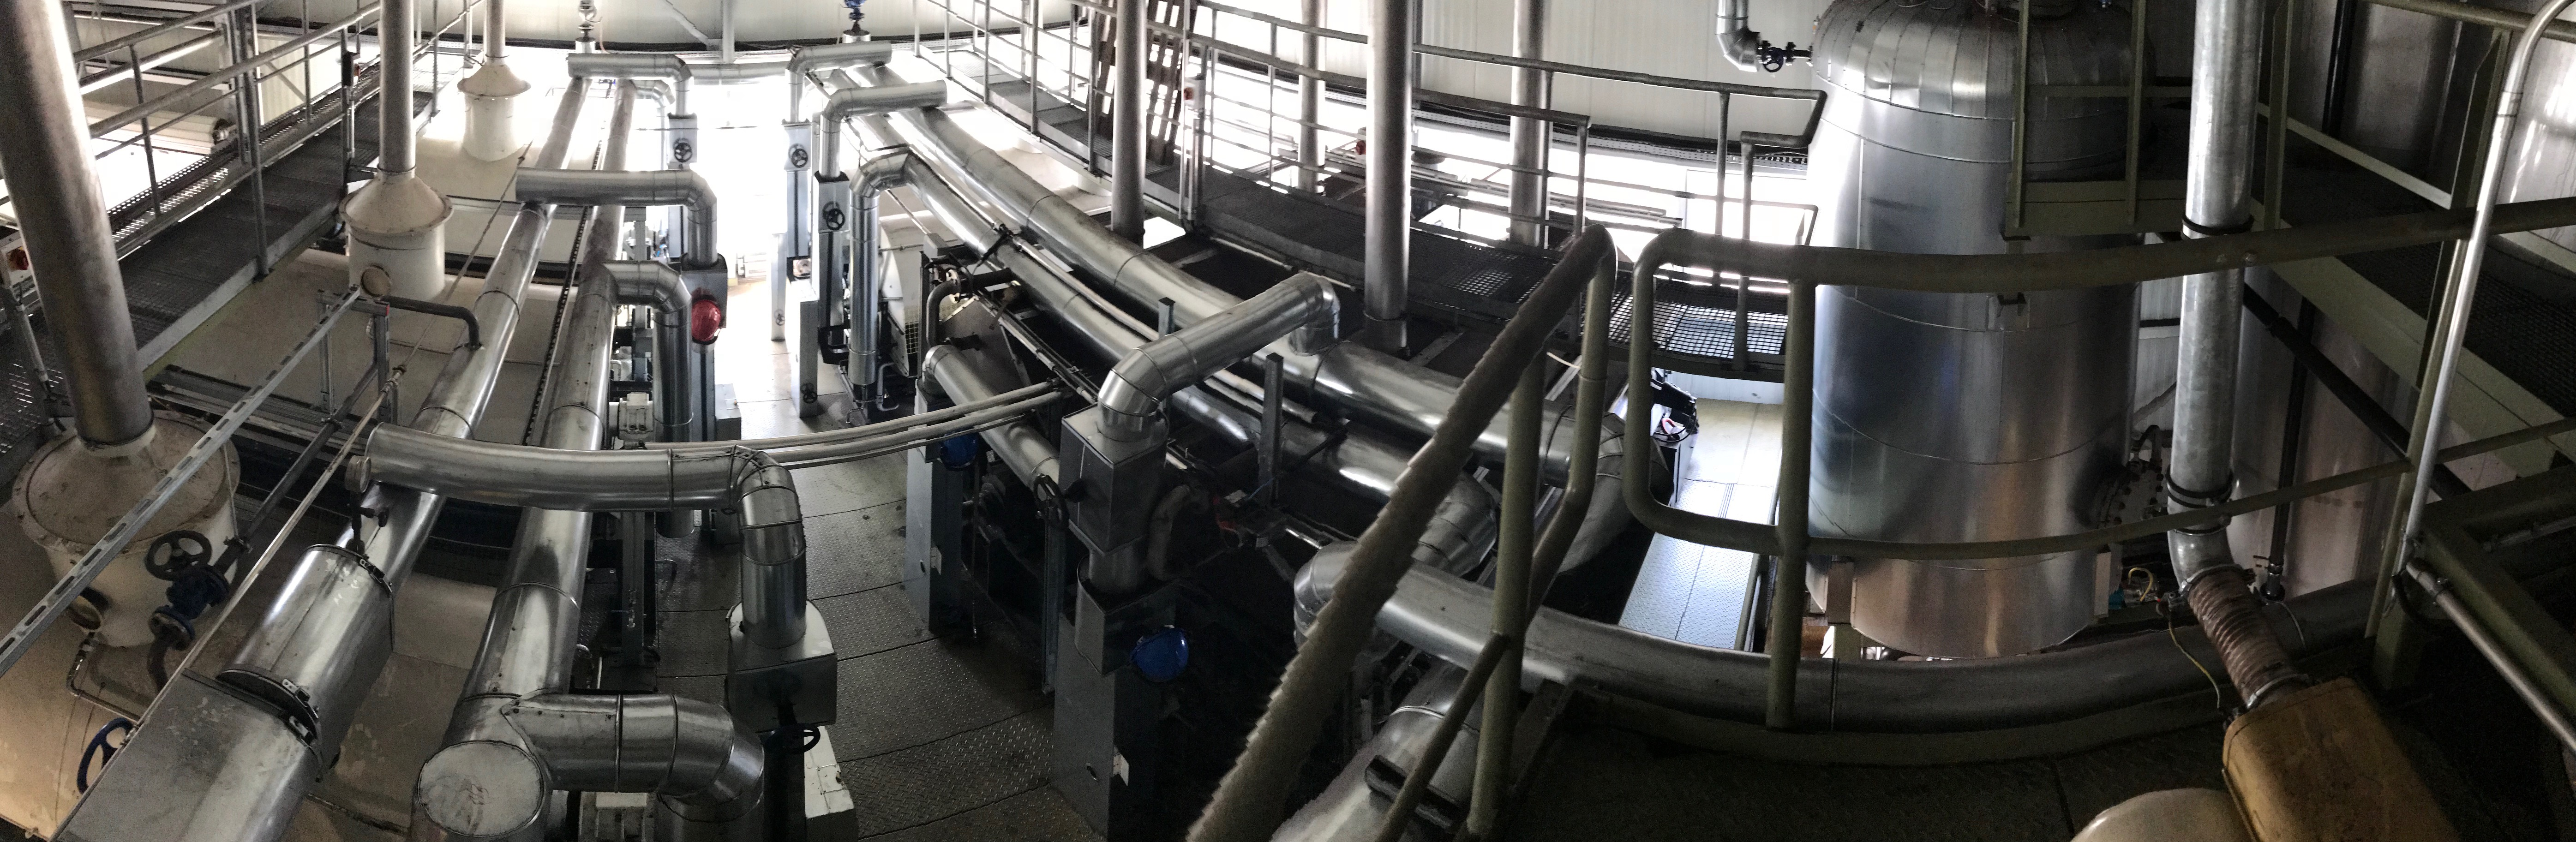 inside_view_production_hall_Humintech_1